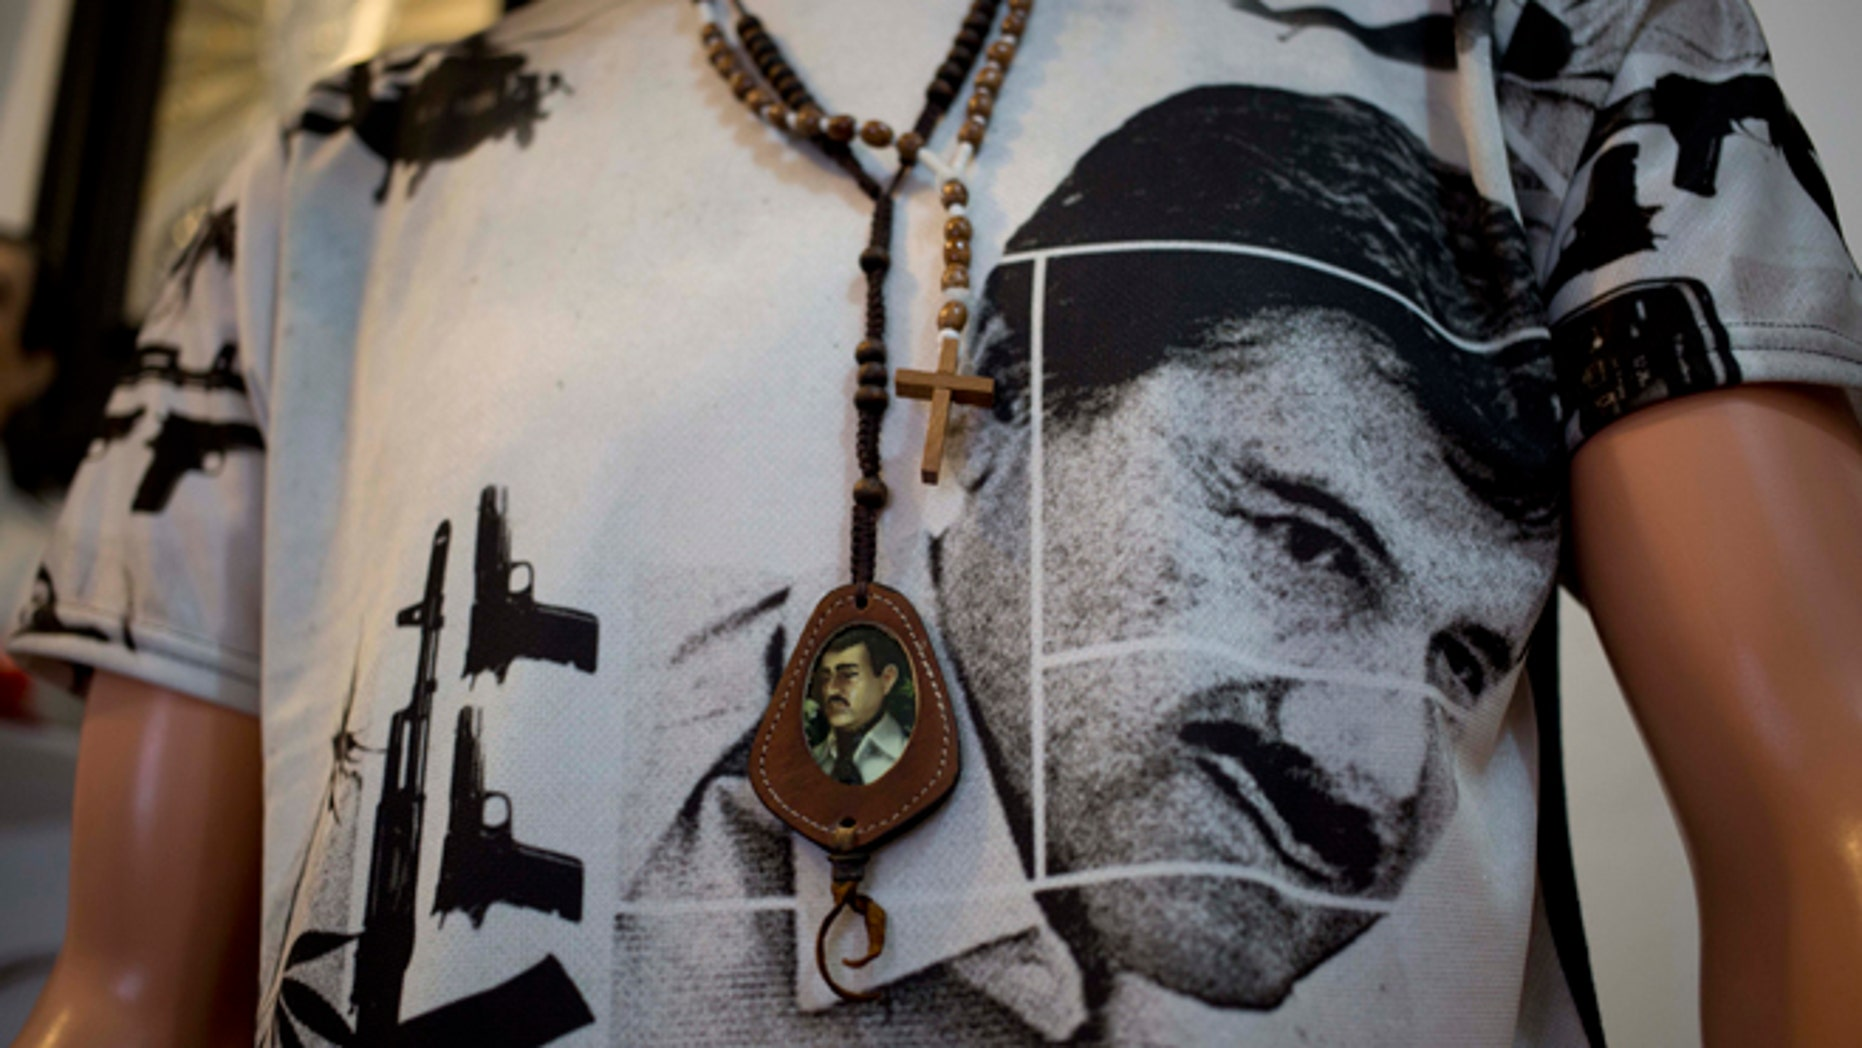 """A T-shirt of fugitive Mexican drug lord Joaquin """"El Chapo"""" Guzman covers a mannequin representing Jesus Malverde, known in Mexico as the """"Saint"""" of drug traffickers, inside the shrine of a faith healer in Mexico City, Friday, Oct. 16, 2015. The government is offering a reward of 60 million pesos, or about $3.5 million dollars, for Guzman's recapture after he made his second escape from a maximum security prison through an underground tunnel in 2015. (AP Photo/Eduardo Verdugo)"""